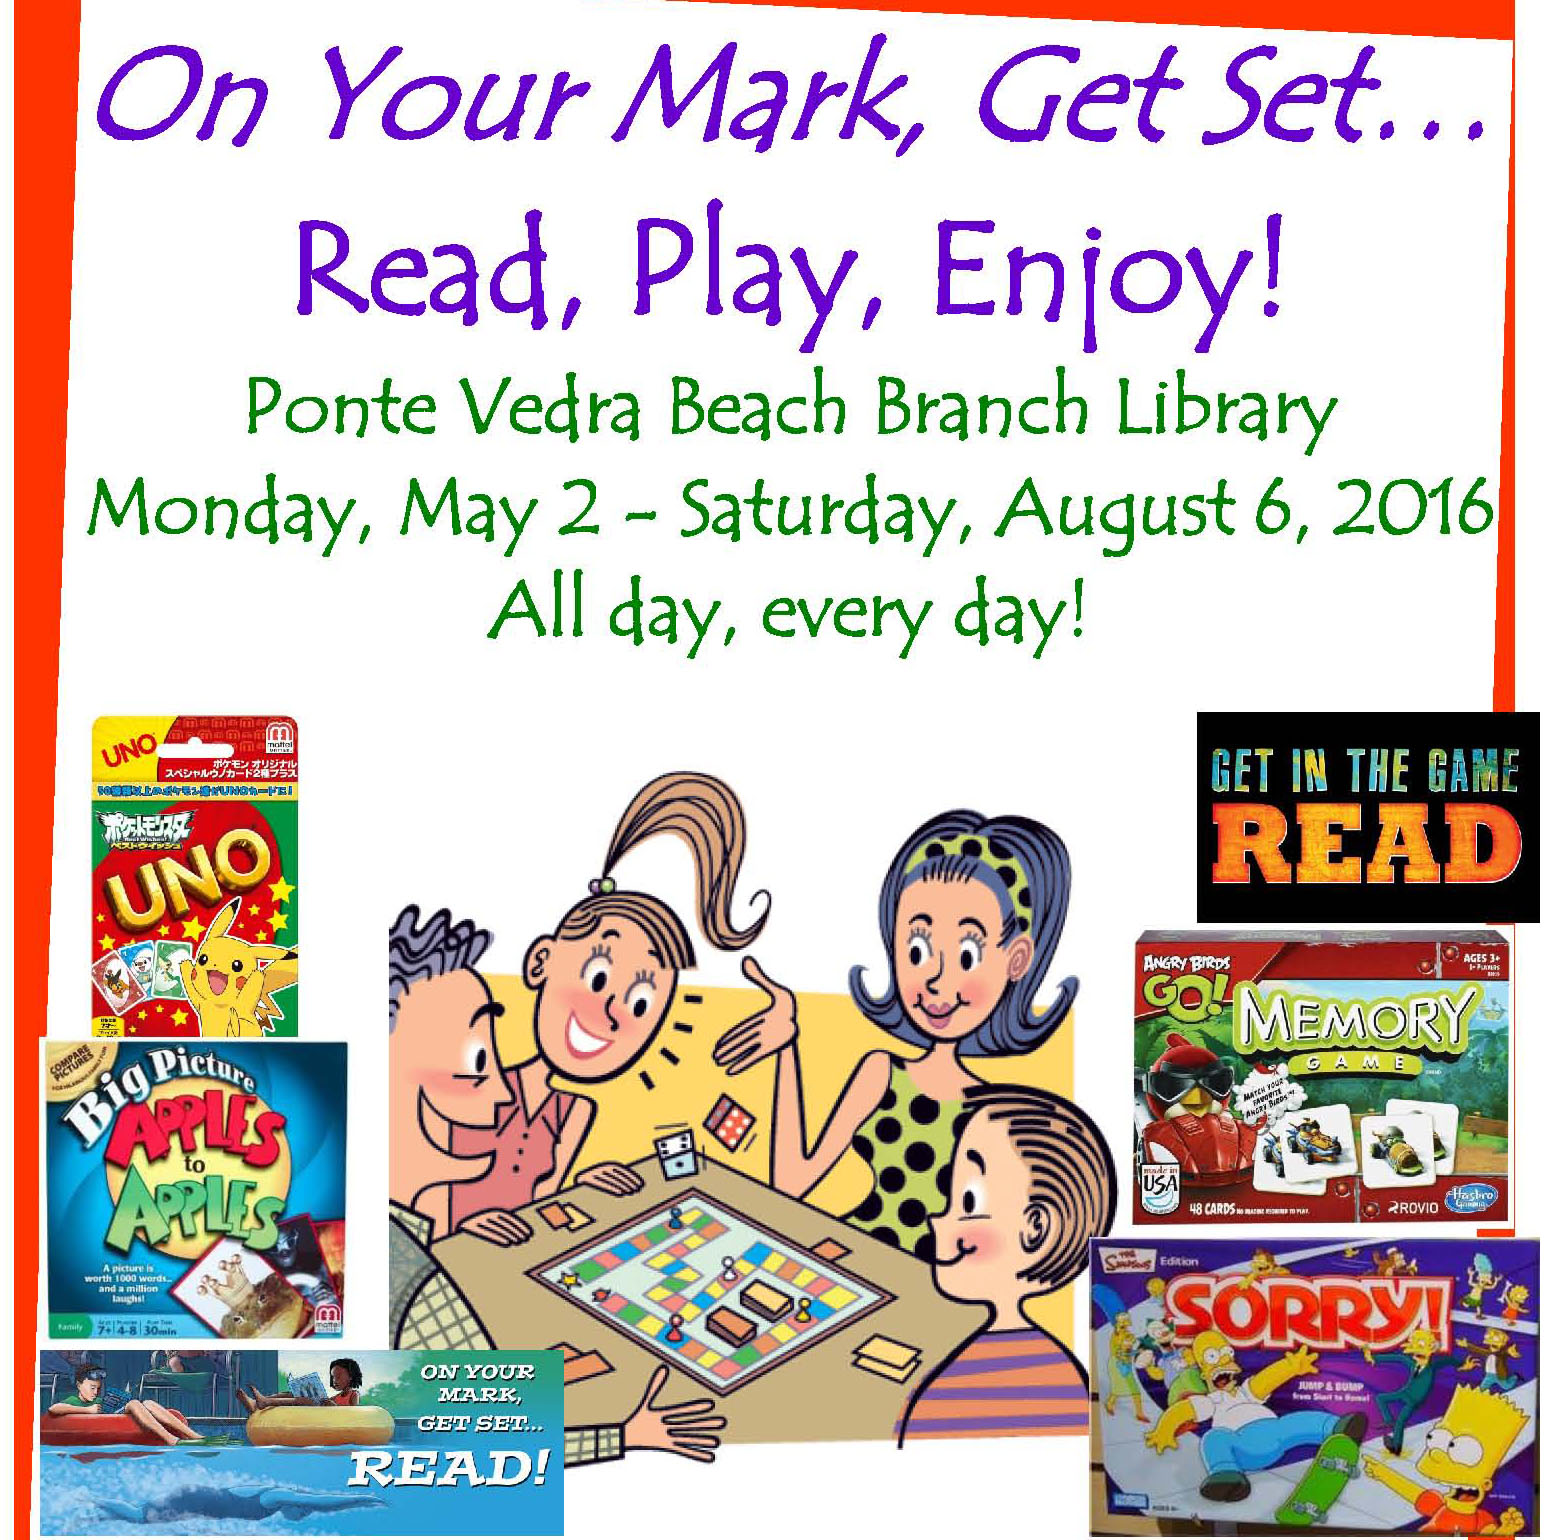 Summer Reading Program In Ponte Vedra